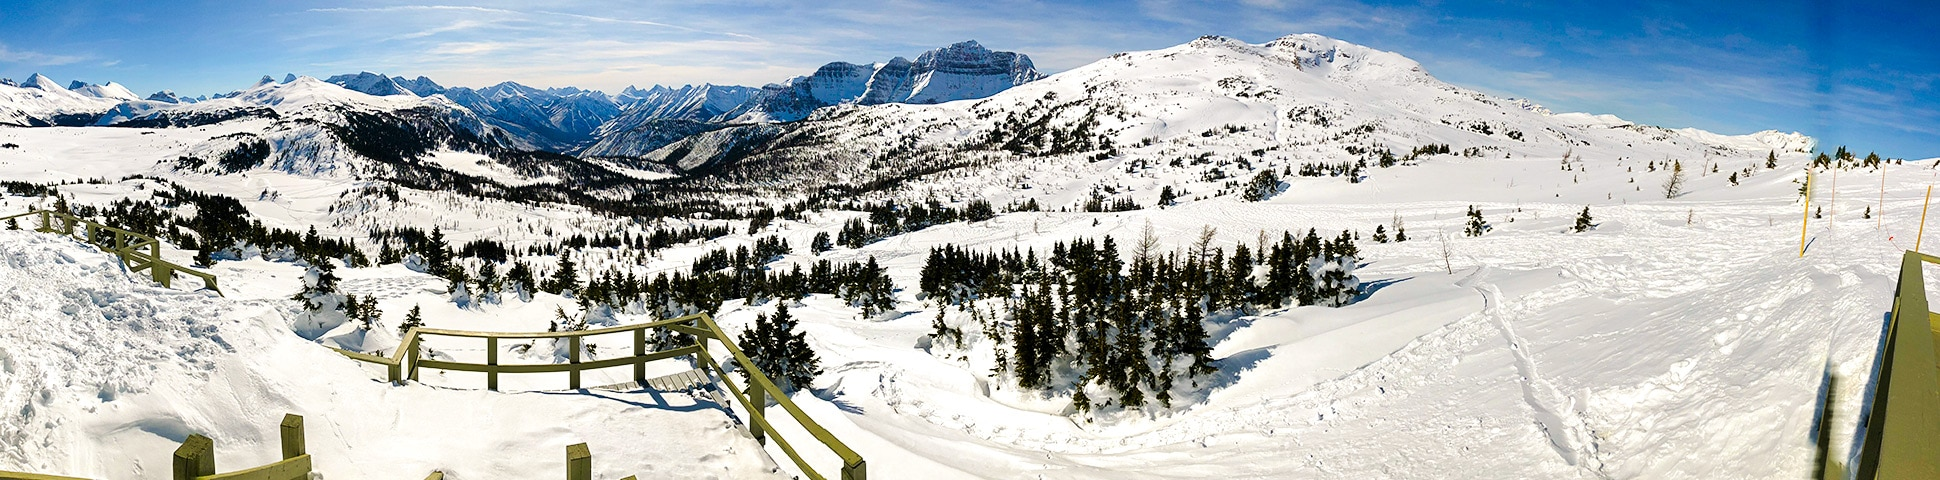 Panoramic views from the Sunshine Meadows snowshoe trail Banff National Park